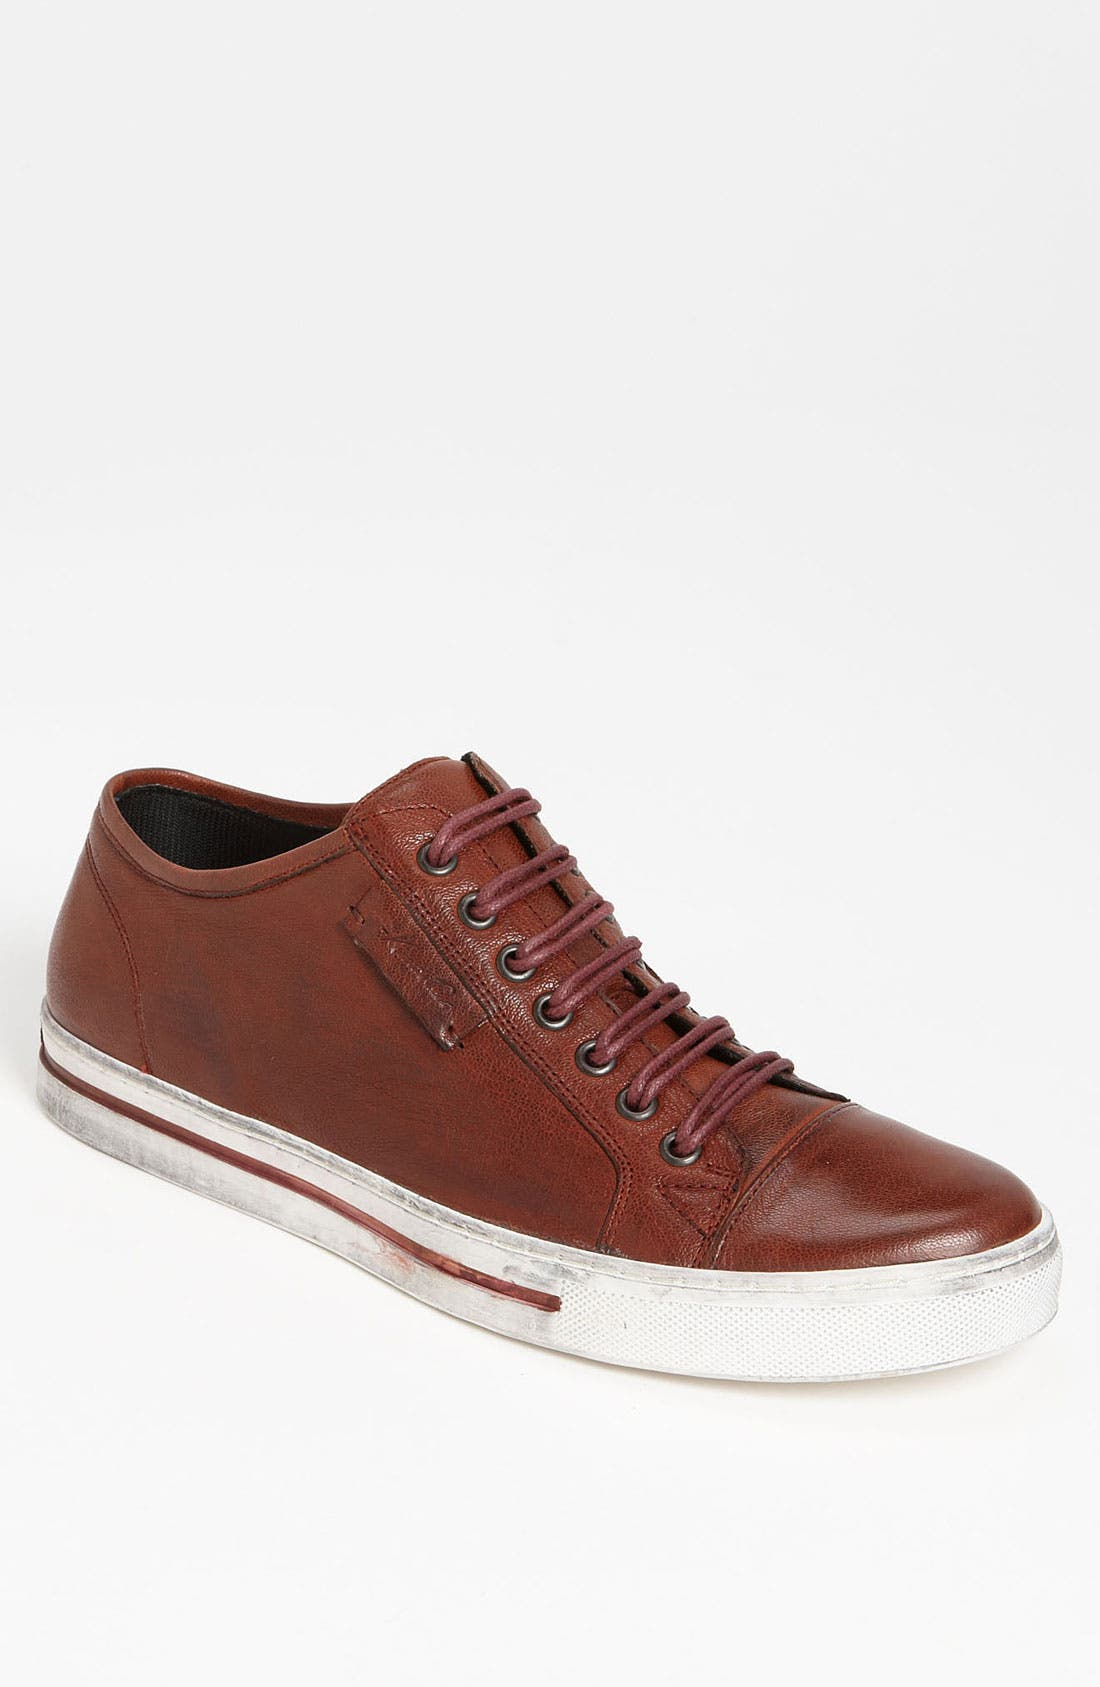 Alternate Image 1 Selected - Kenneth Cole New York 'On the Double' Sneaker (Men)